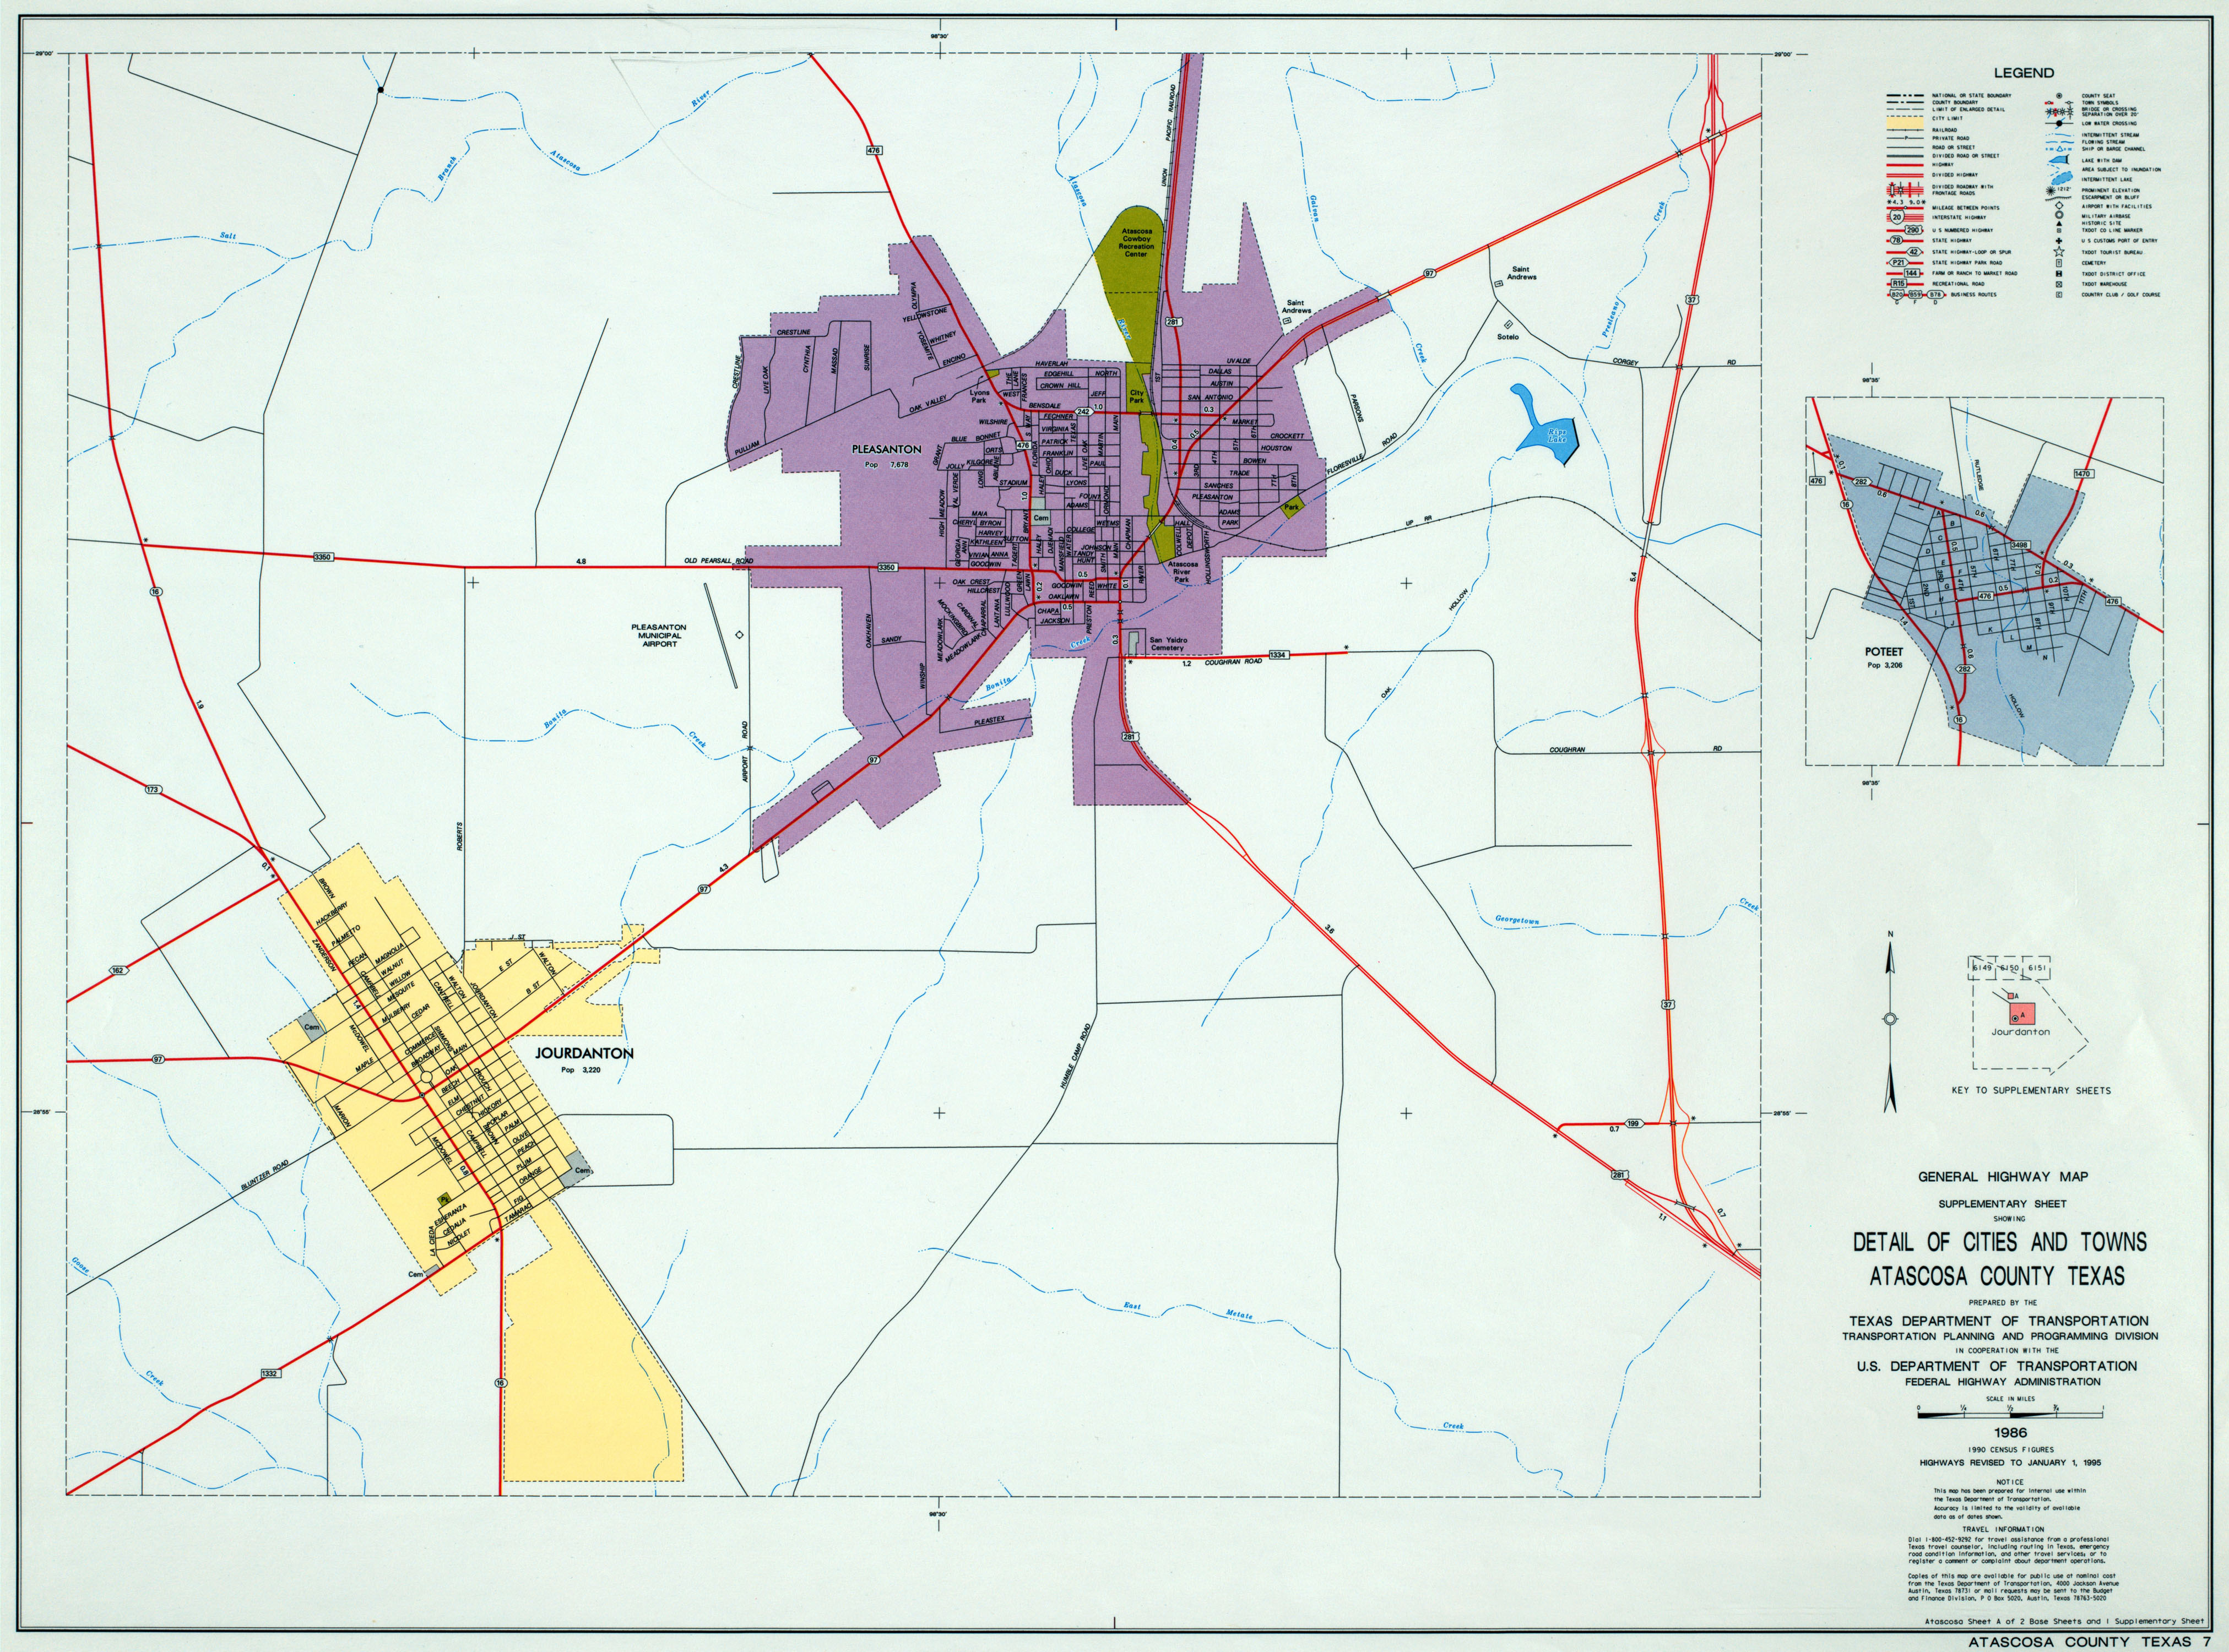 Show Map Of Texas With Cities.Texas County Highway Maps Browse Perry Castaneda Map Collection